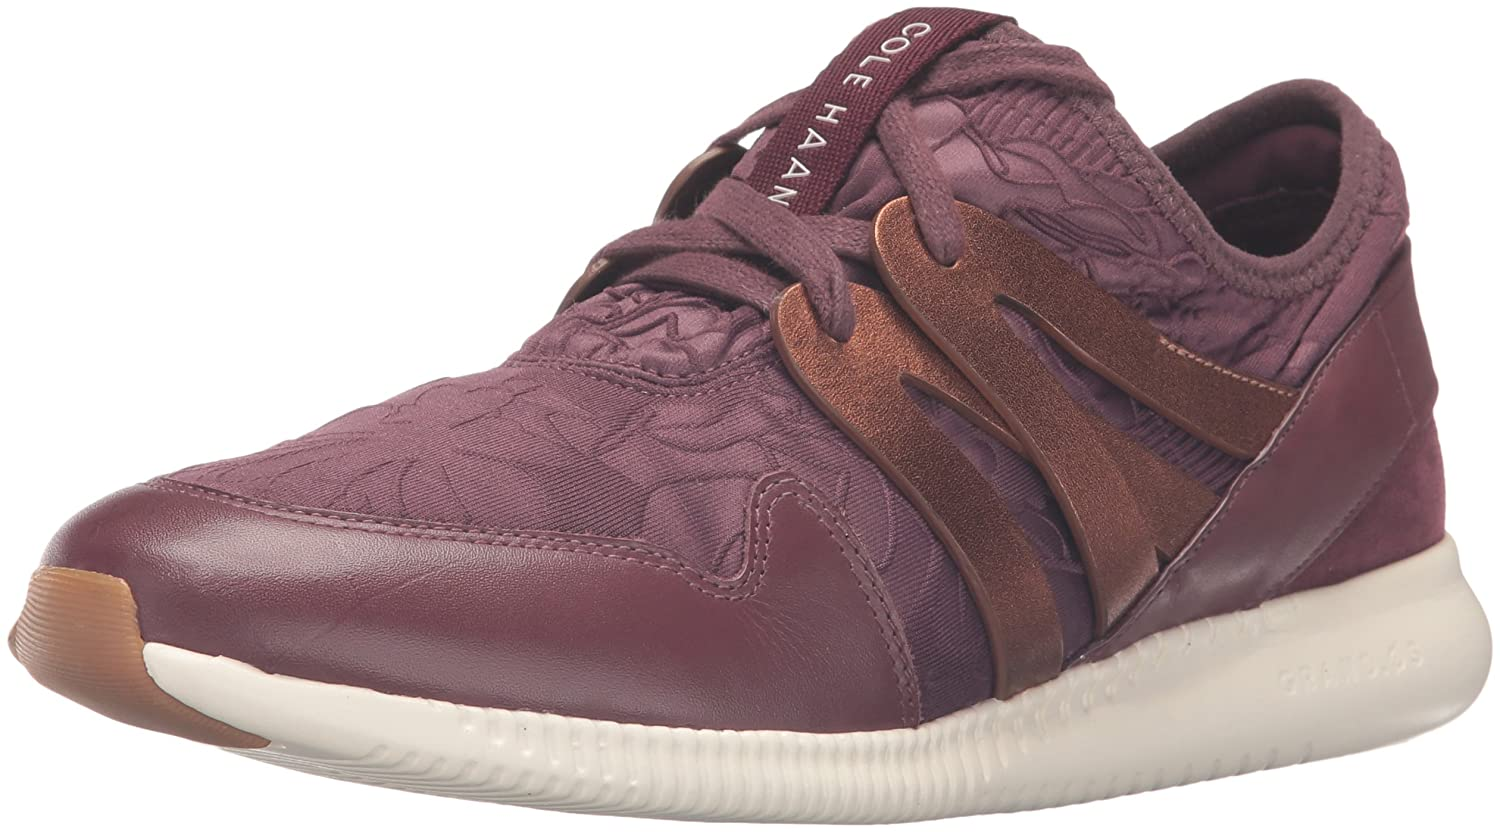 Cole Haan Women's 2.0 Studiogrand Trainer Fashion Sneaker B01ITEID4I 8.5 B(M) US|Deep Berry Floral Embossed Neoprene/Leather/Deep Copper Metallic Leather/Ivory